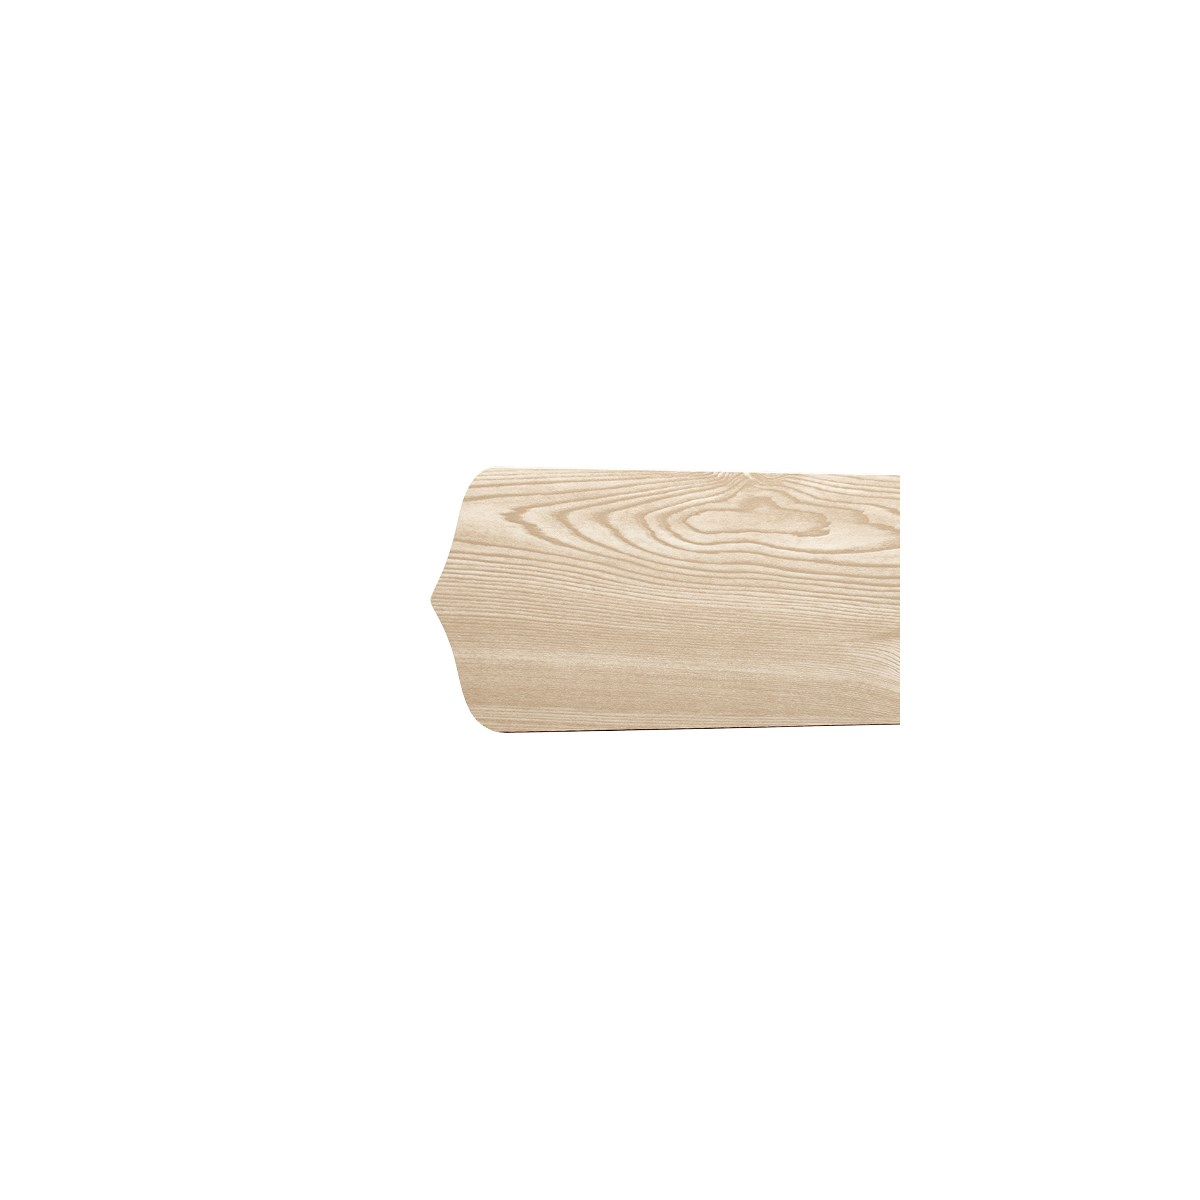 OLD PINE TYPE 1-52 POINT